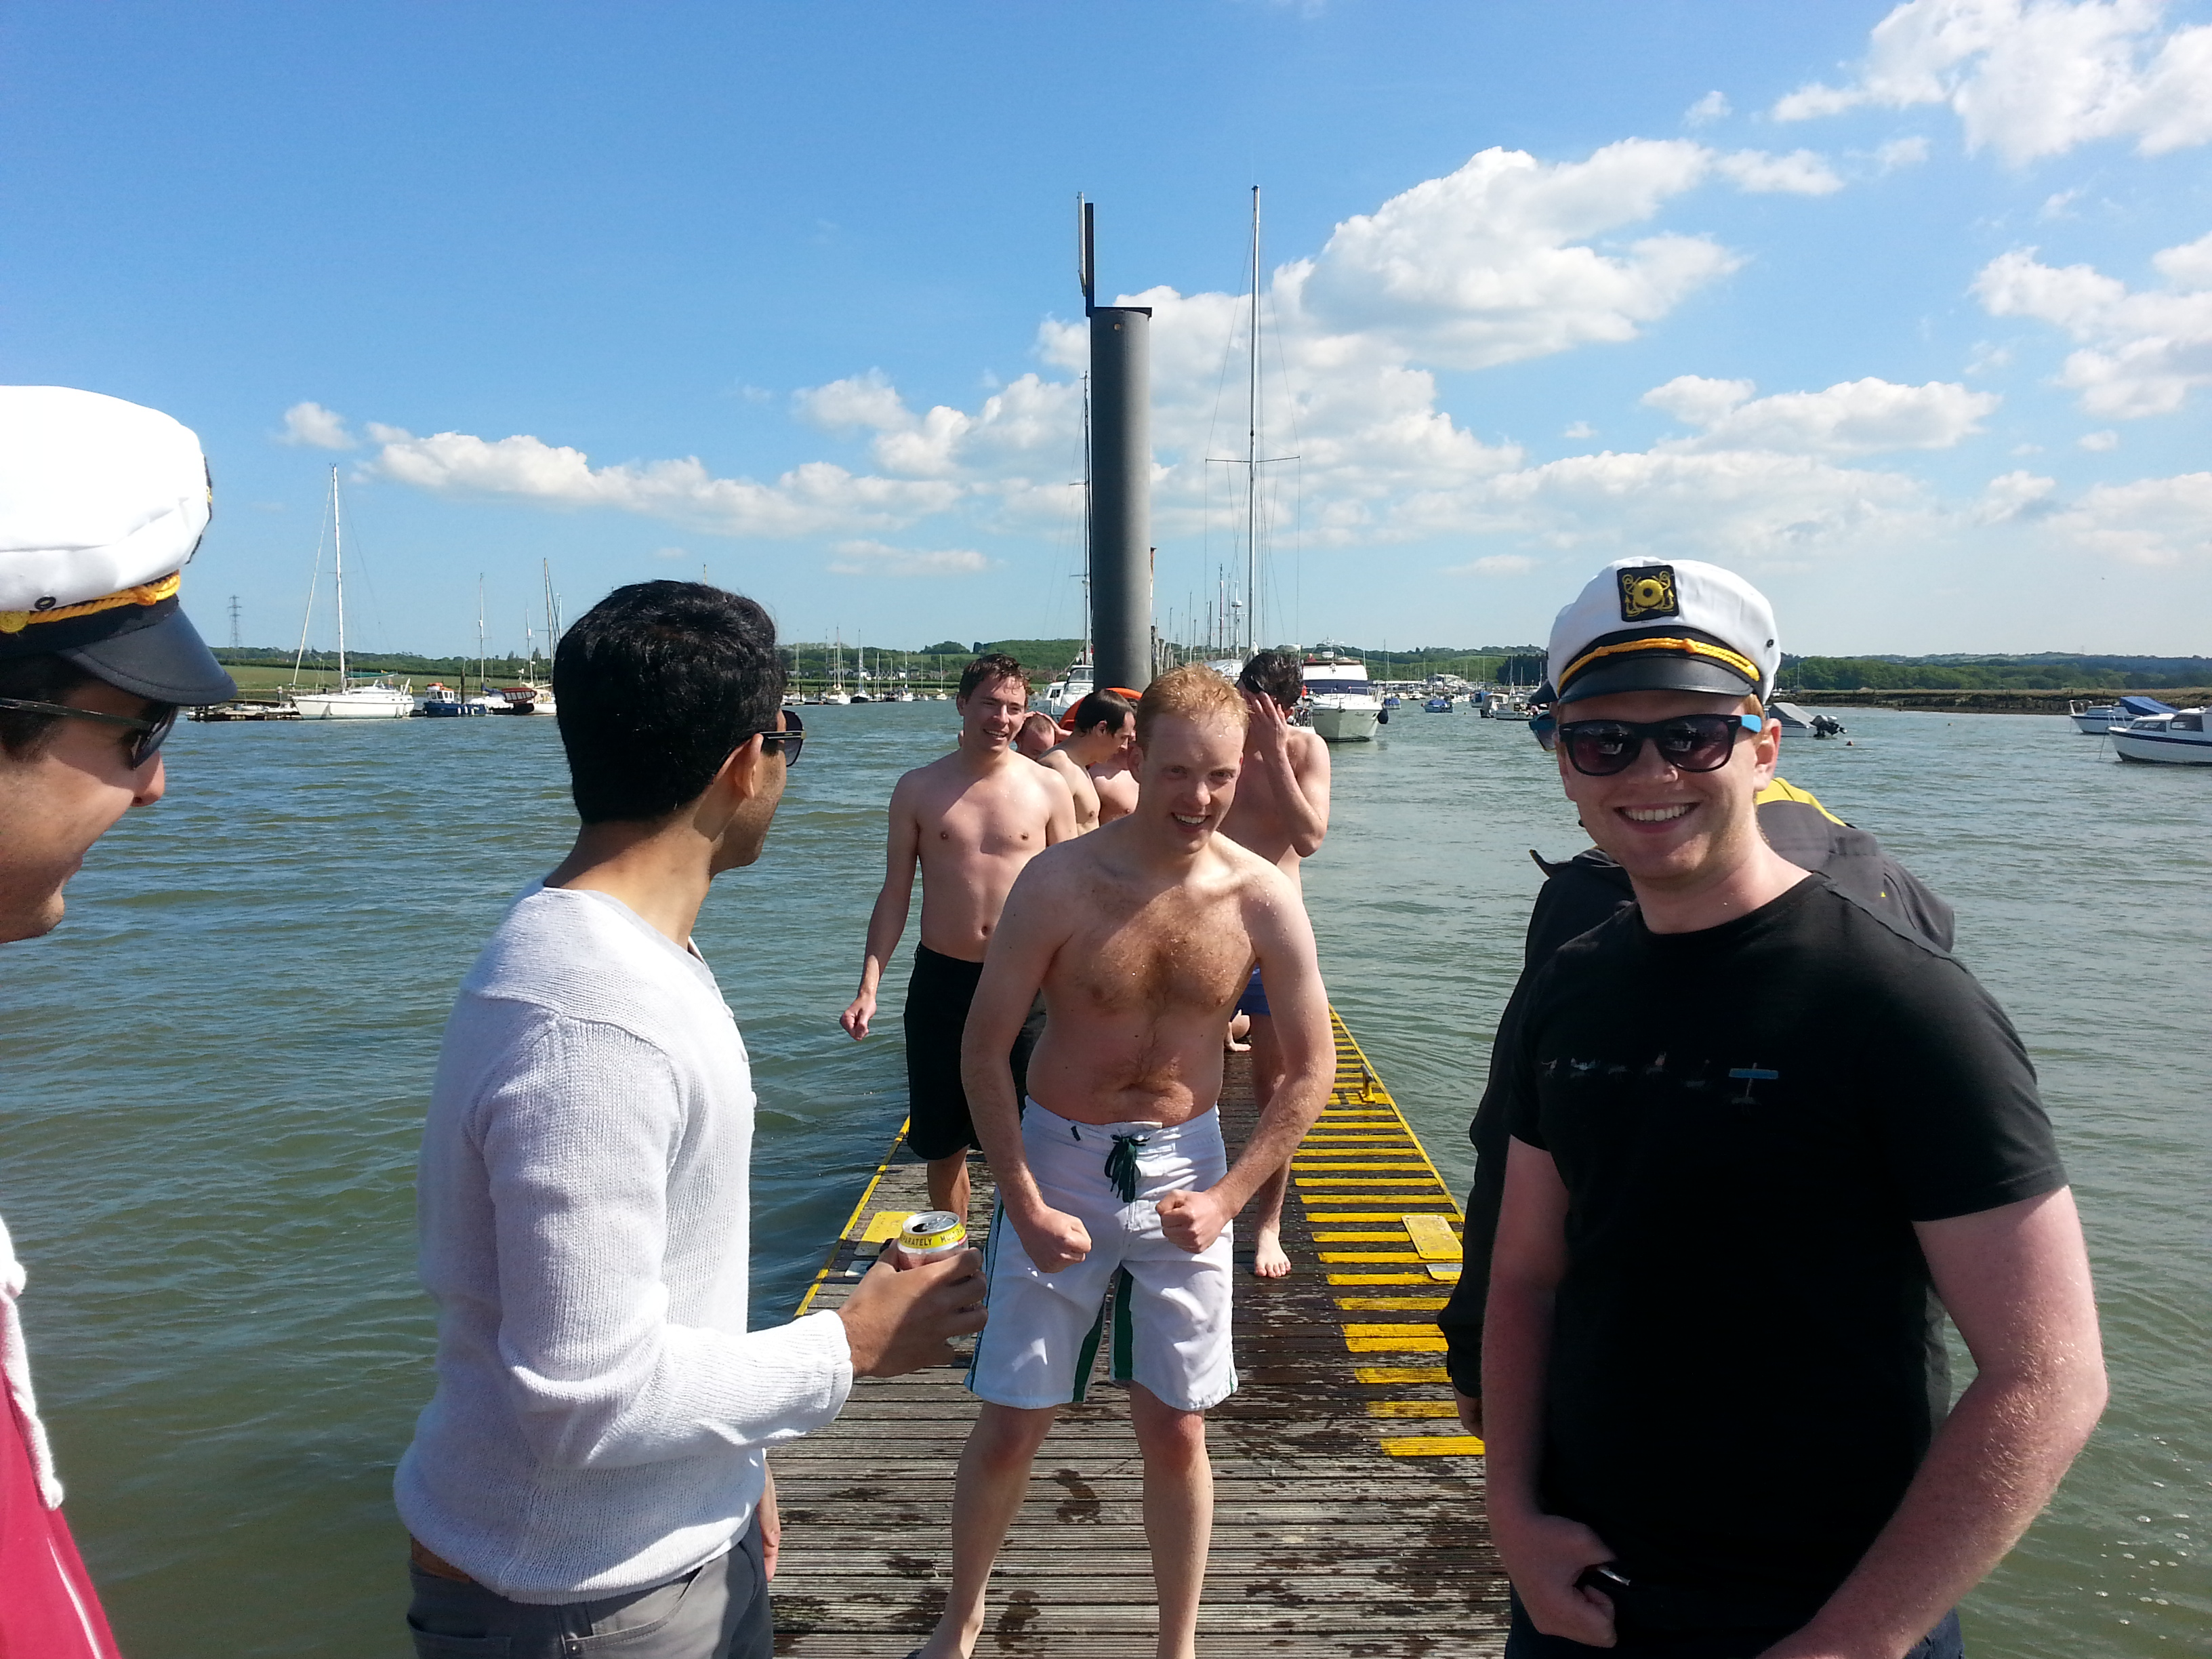 Stag Party Swimming On lsle Of Wight